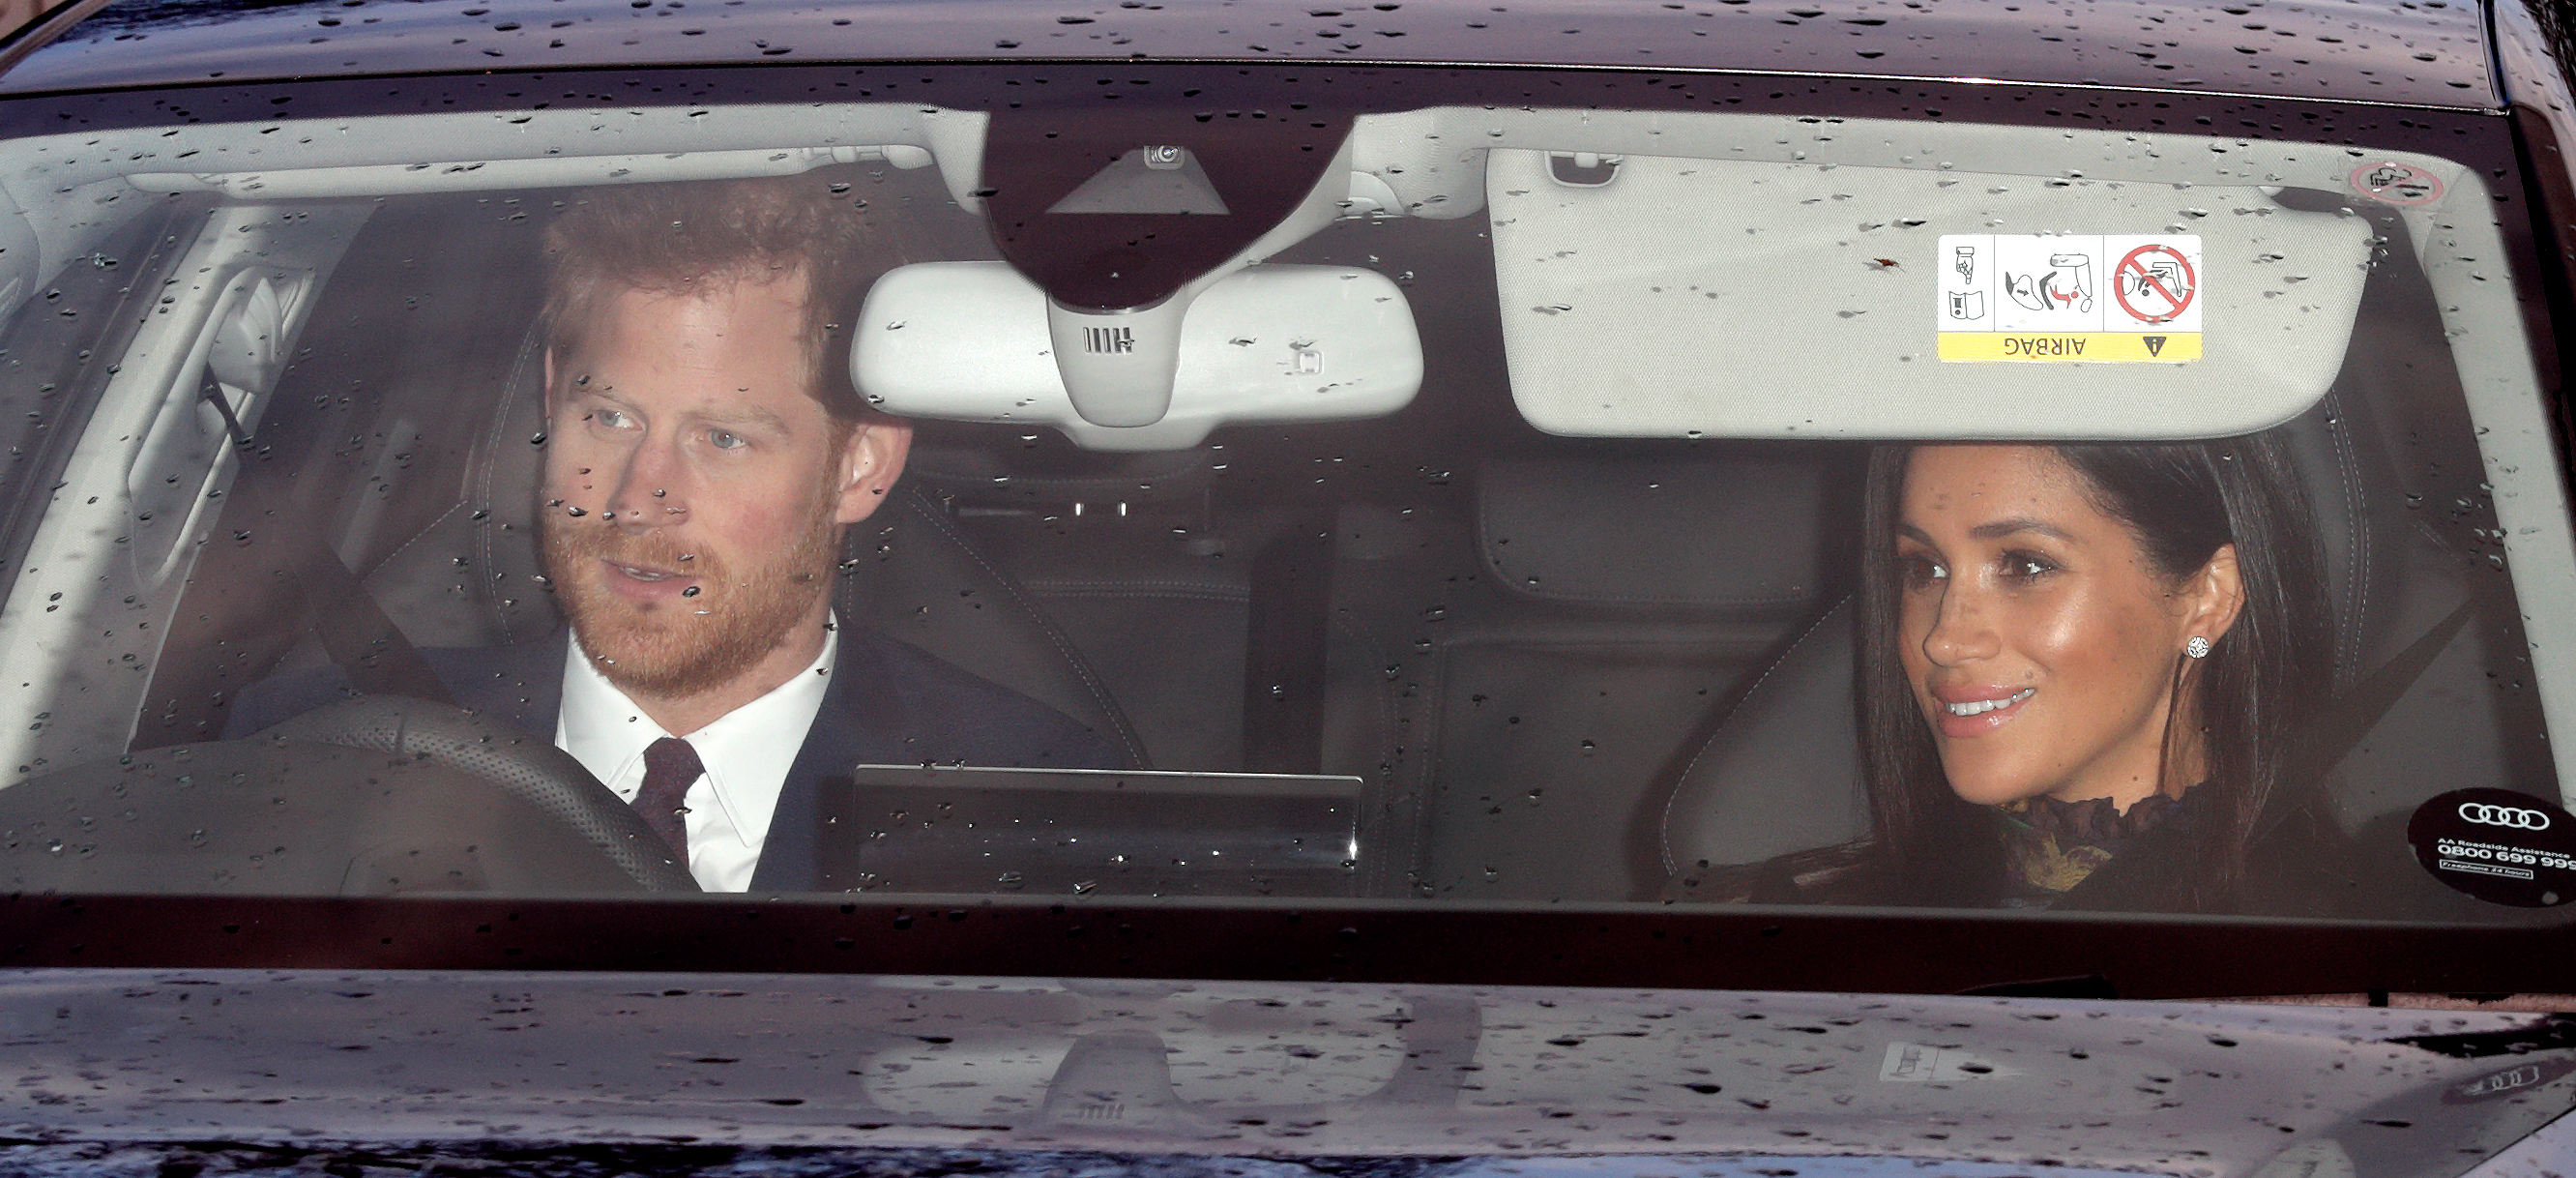 Prince Harry and Meghan Markle driving.